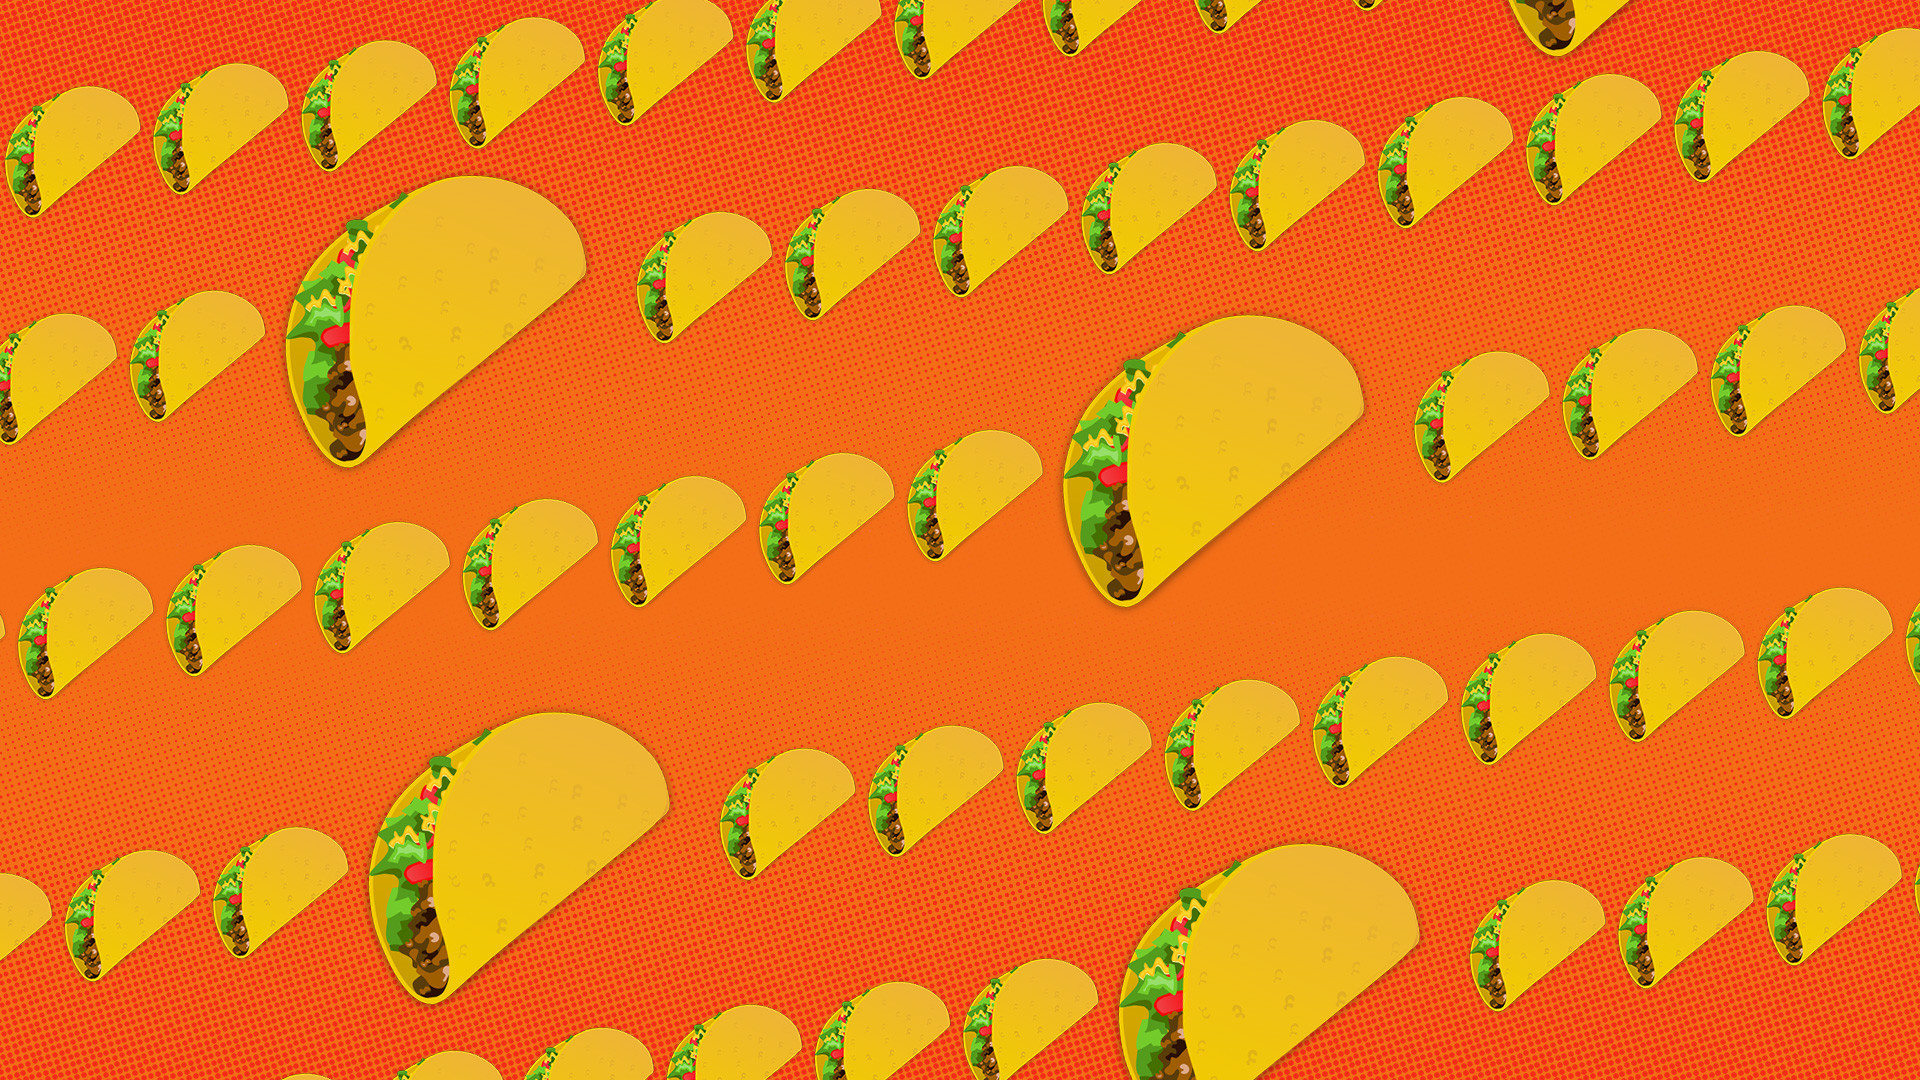 Res: 1920x1080, Mexican Fiesta Pictures › Top 741 Mexican Fiesta Wallpapers